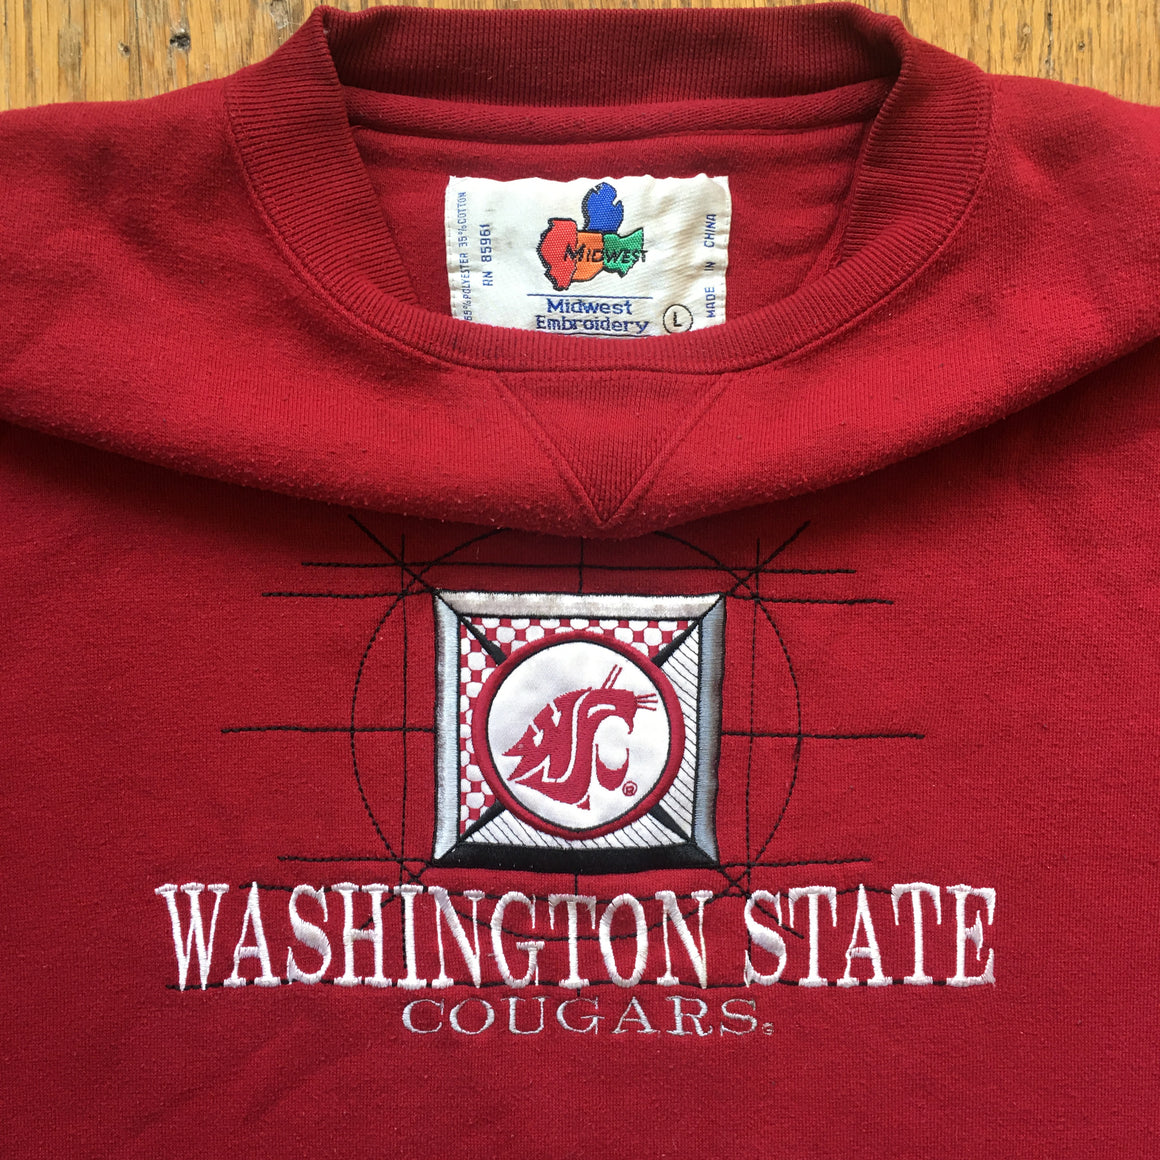 Washington State Cougars Sweatshirt - L